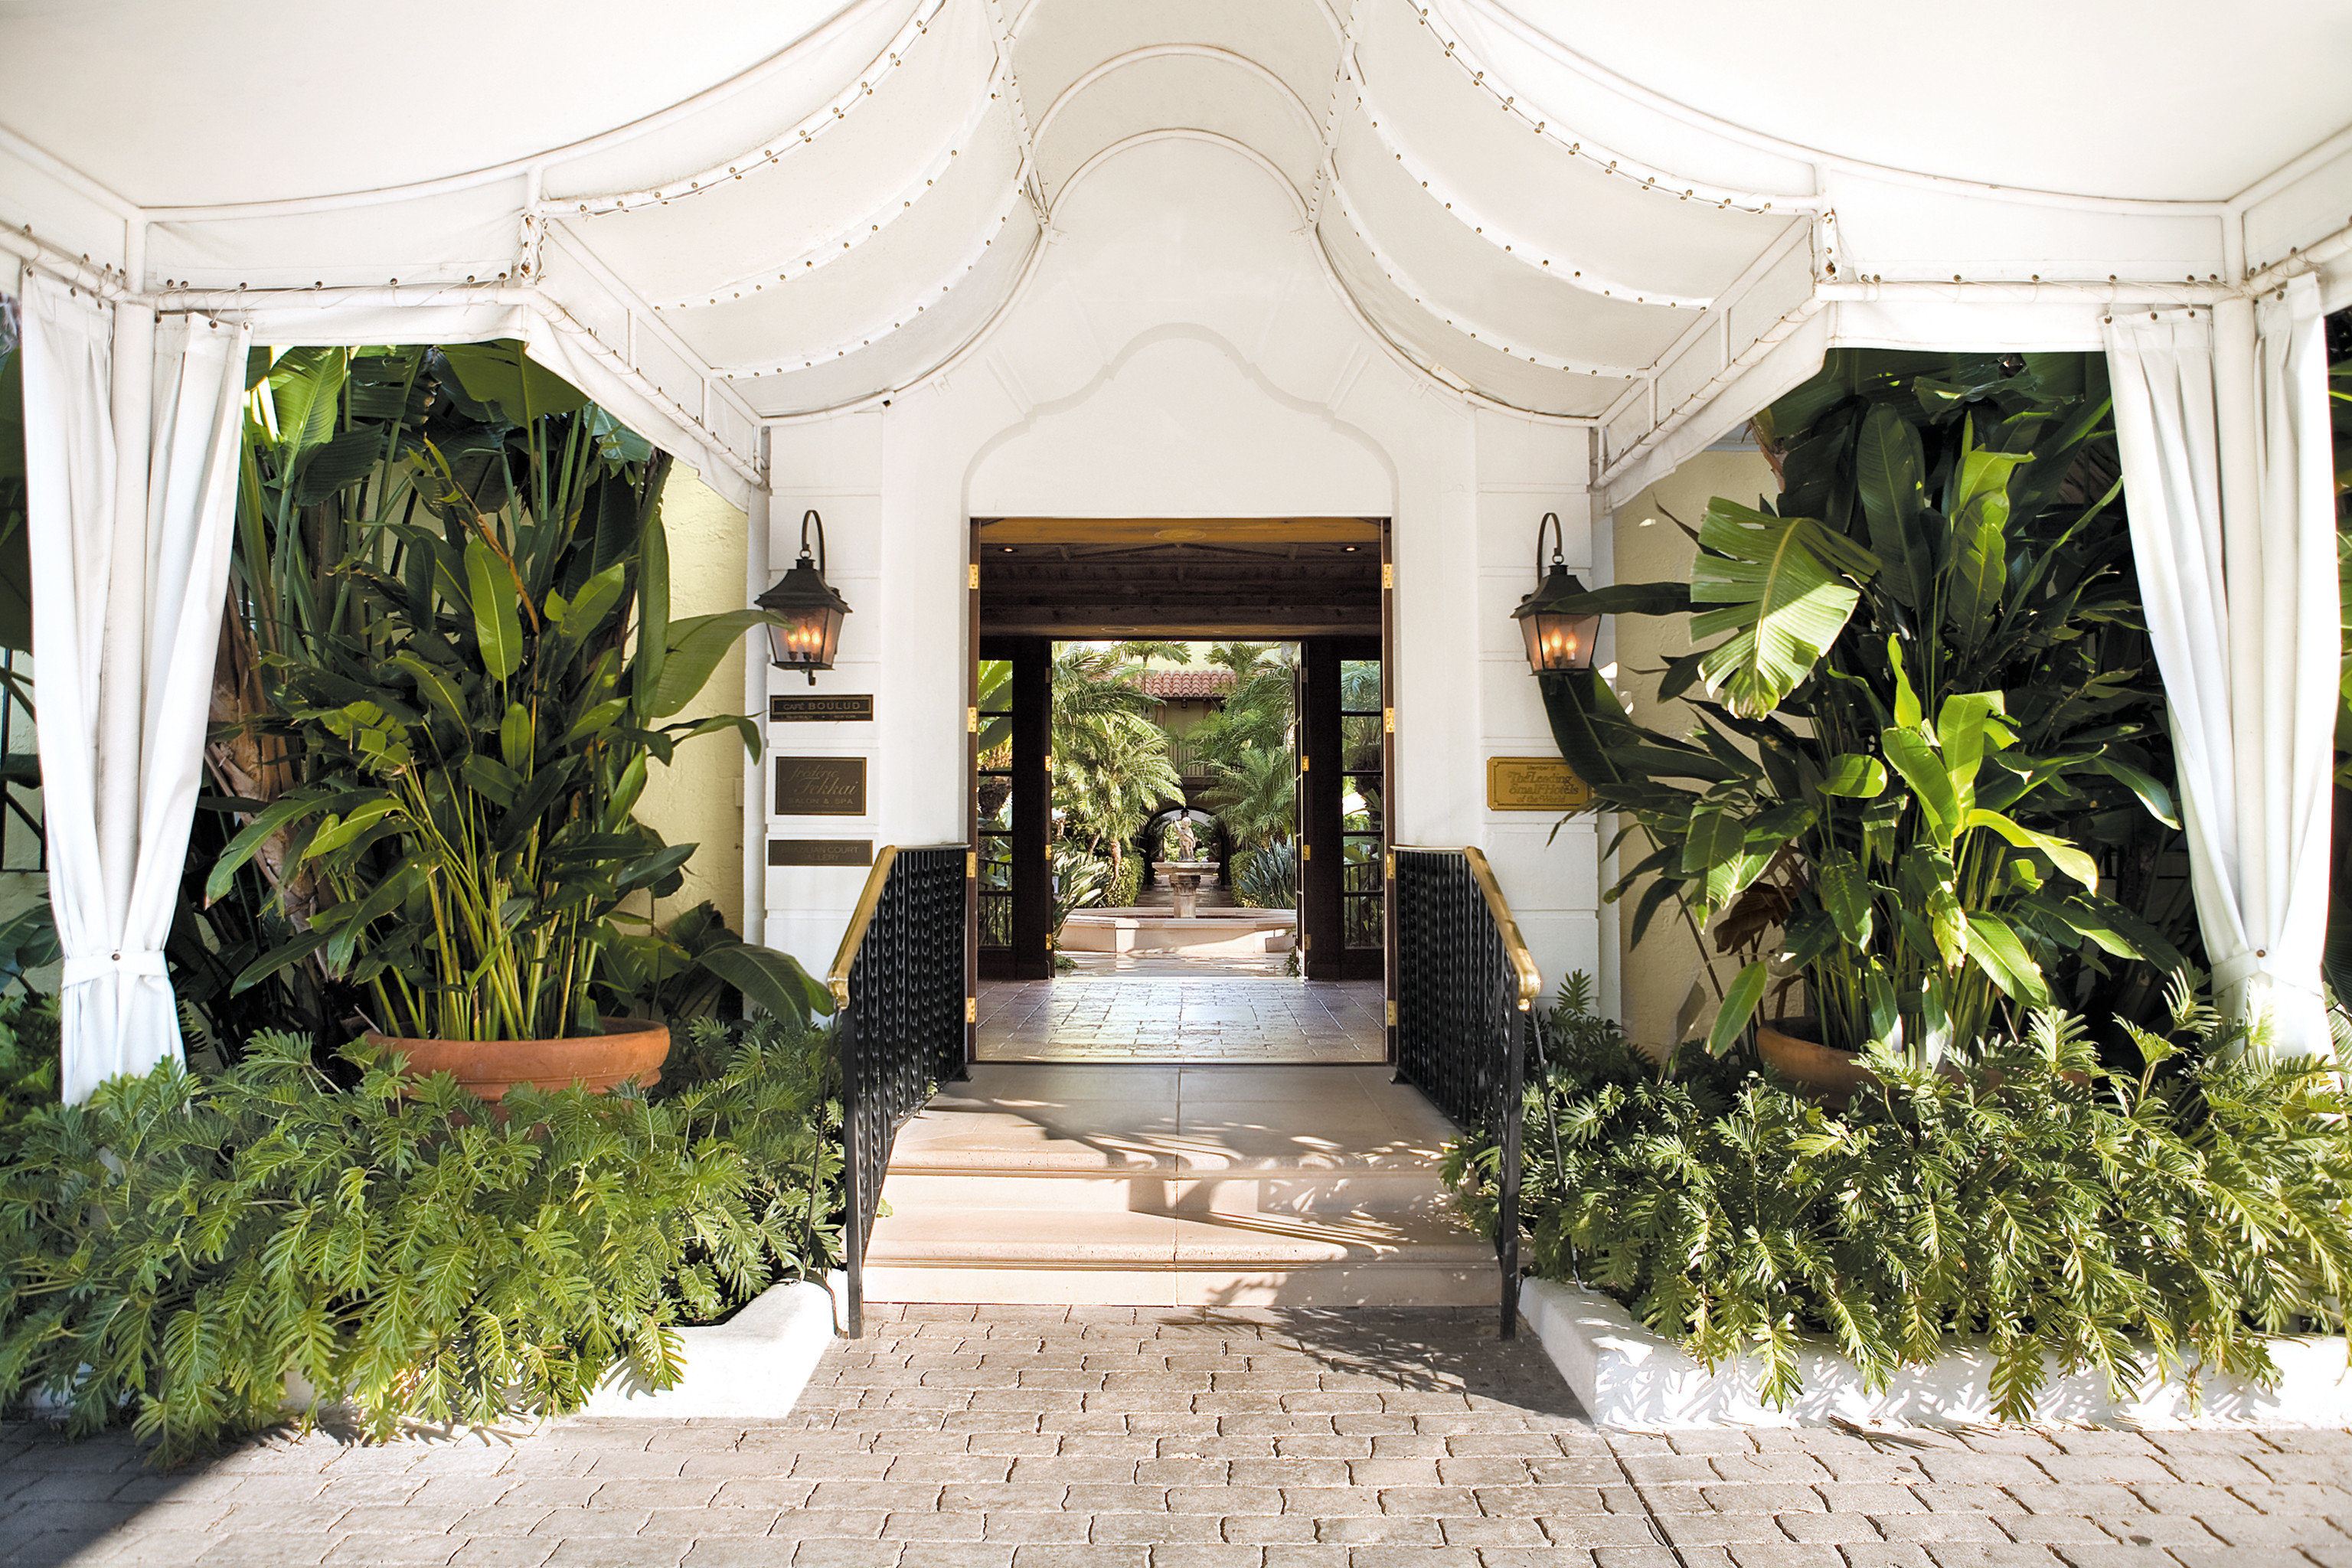 Architecture Buildings Elegant Exterior Luxury property plant mansion Courtyard home floristry Lobby flooring palace Villa Garden stone colonnade